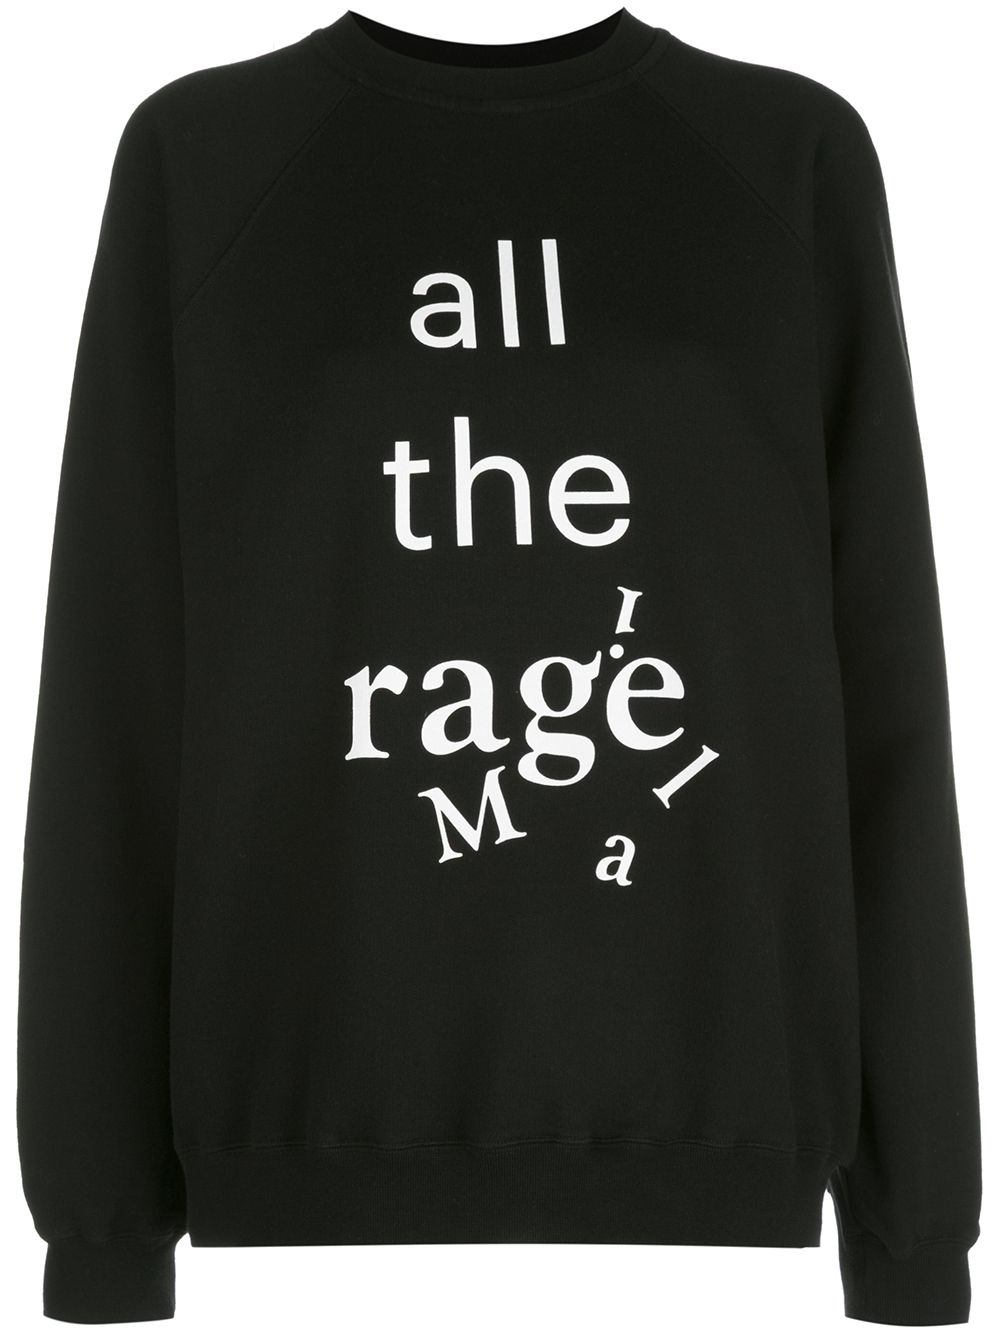 MAISON MARGIELA WOMEN ALL THE MARGIELA PRINT SWEATSHIRT